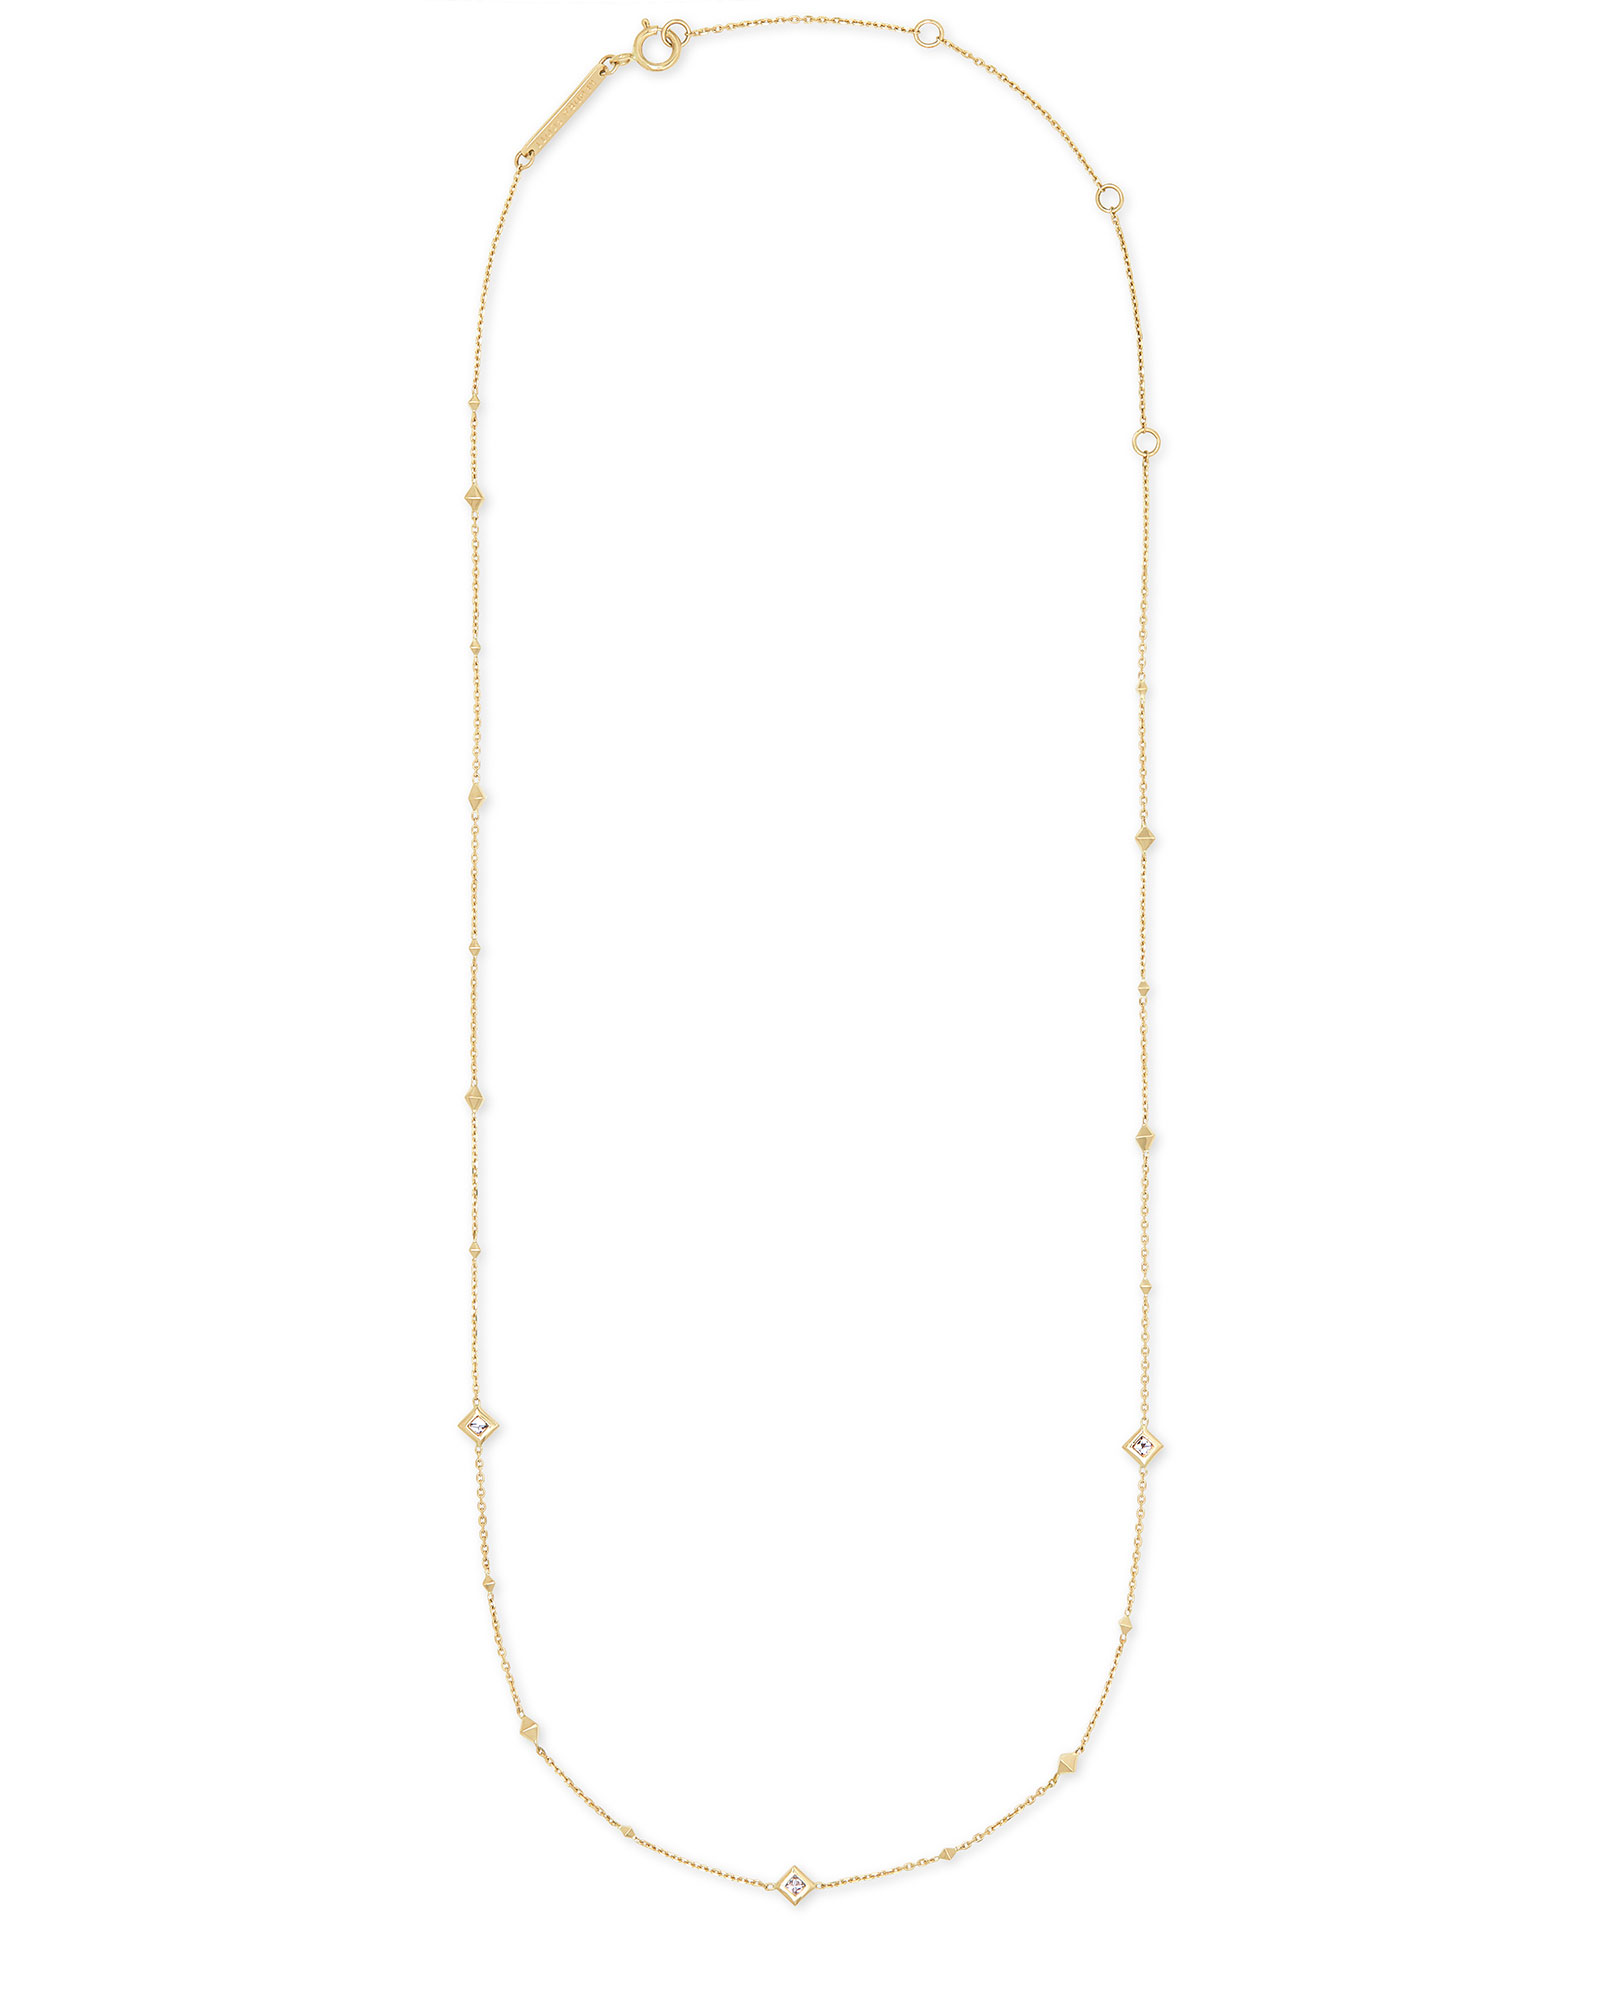 Michelle 14k Yellow Gold Strand Necklace in White Diamond